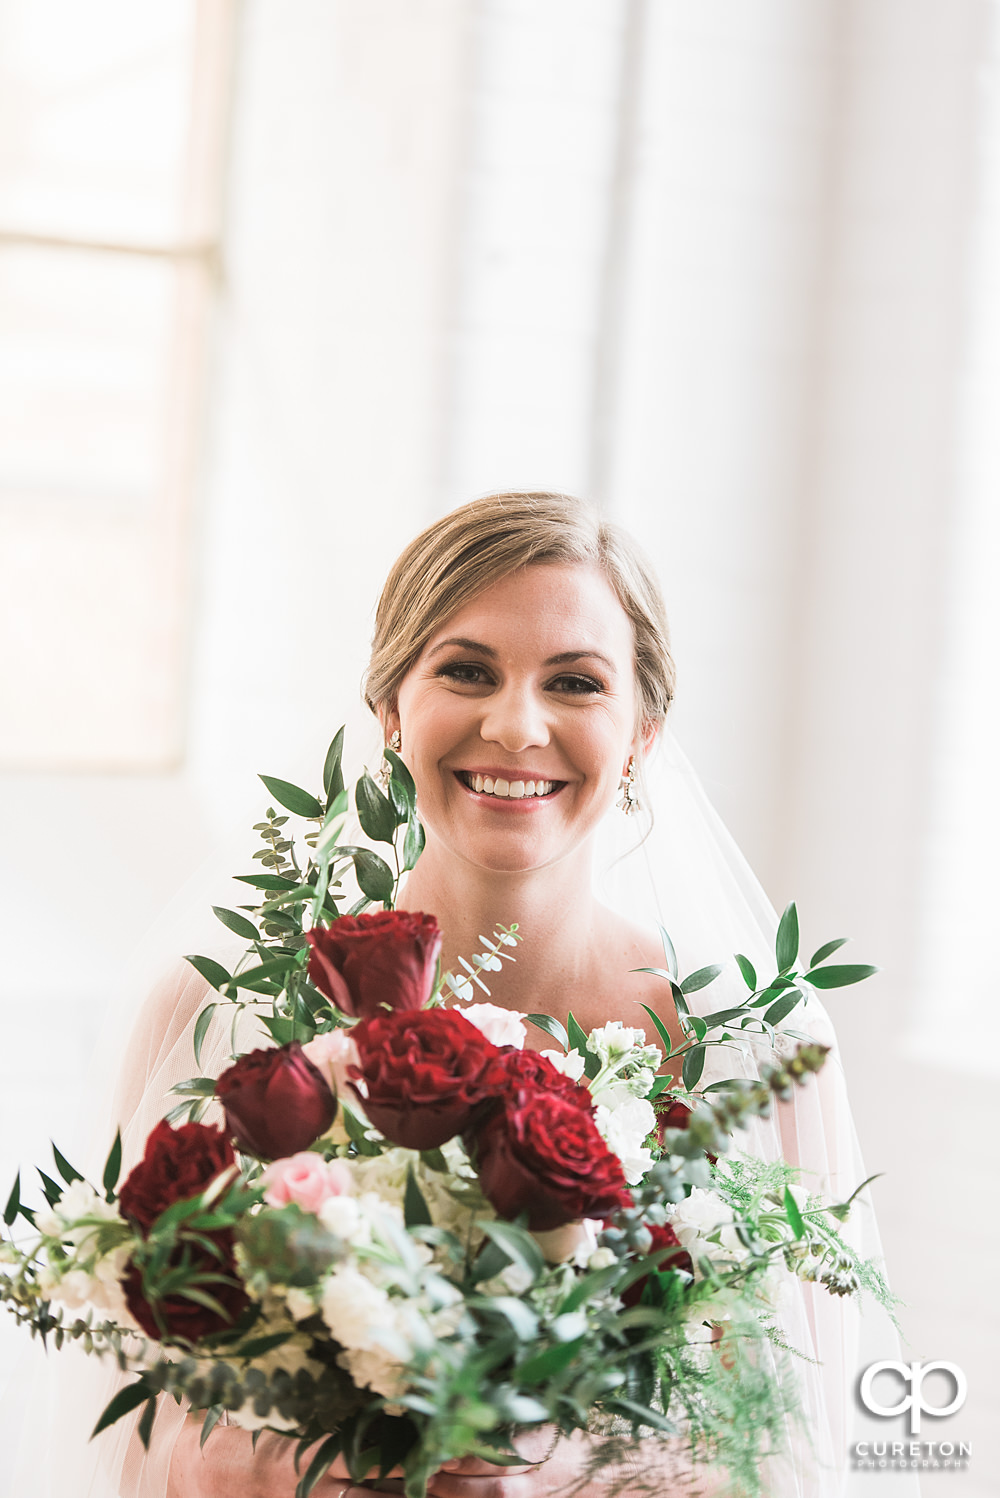 Bride smiling holding a beautiful bouquet by Culpepper Designs.